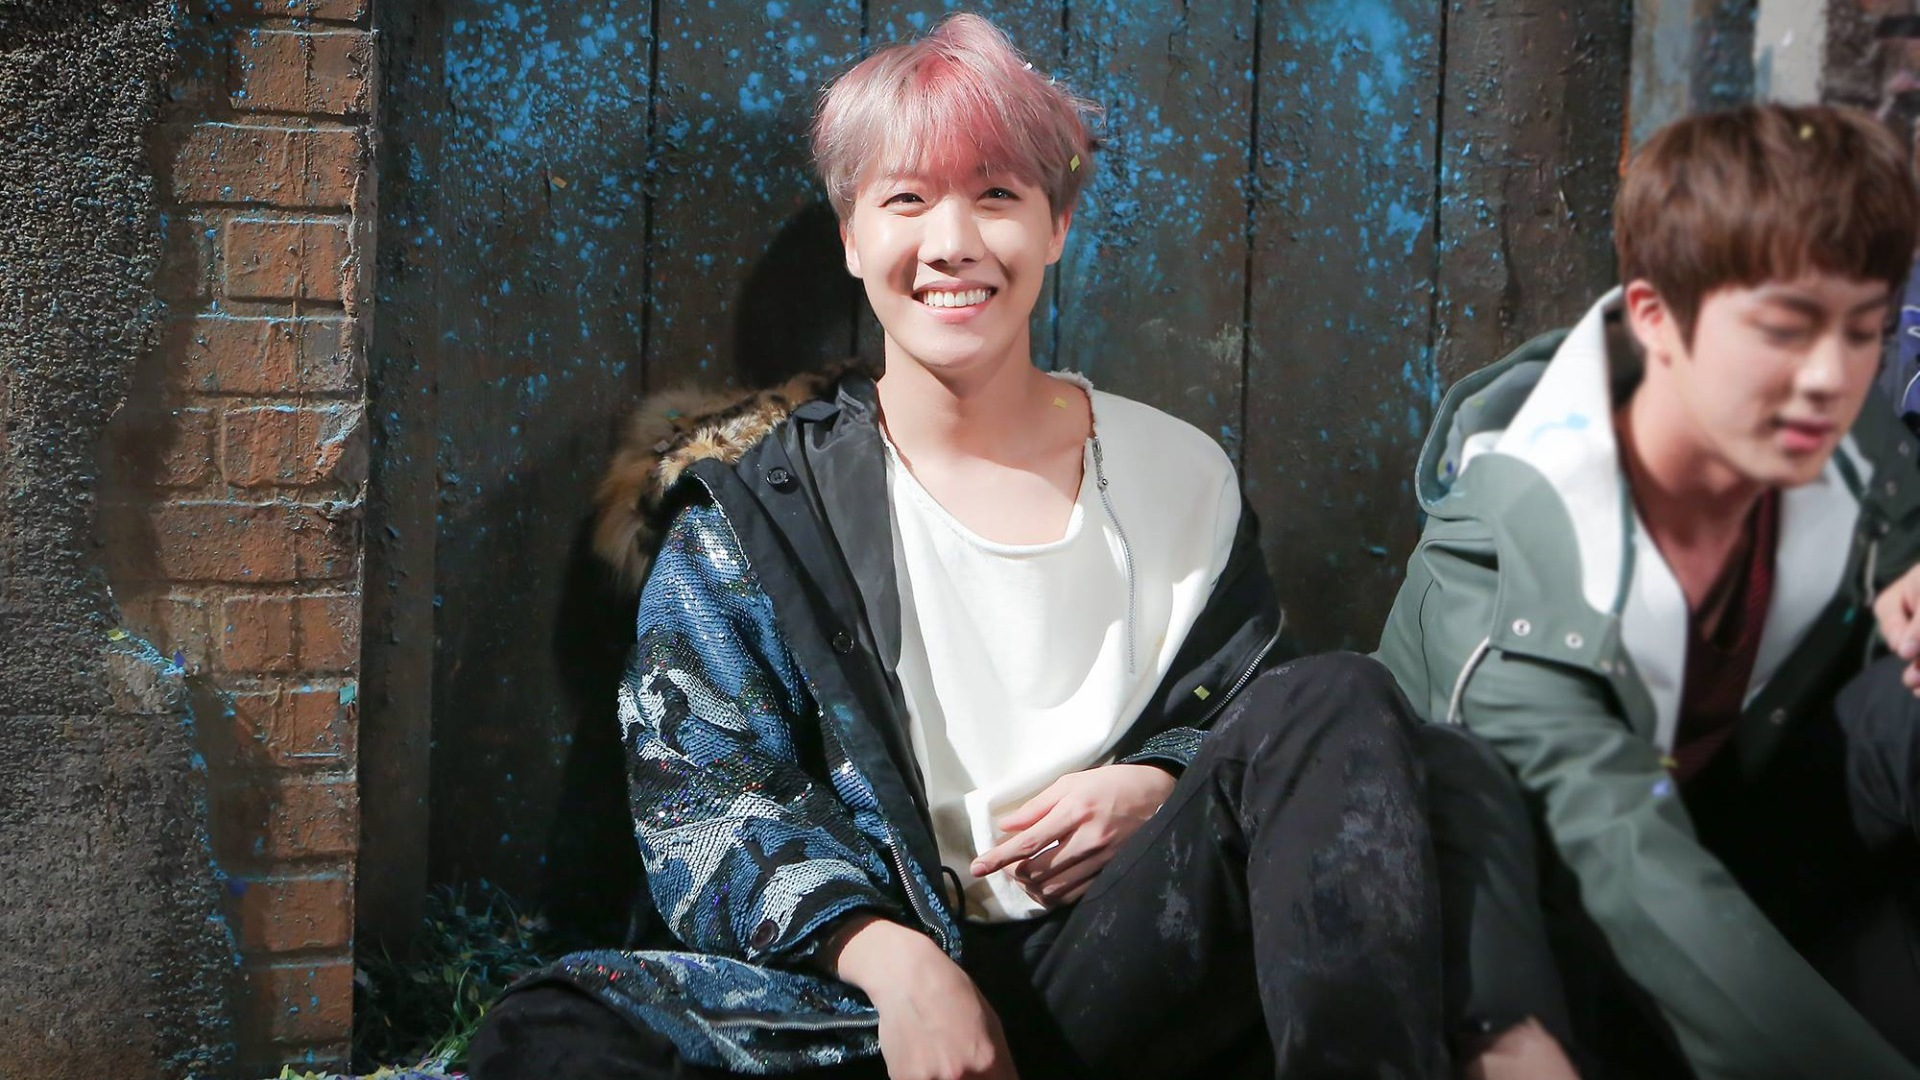 Bts Jhope Wallpaper Hd